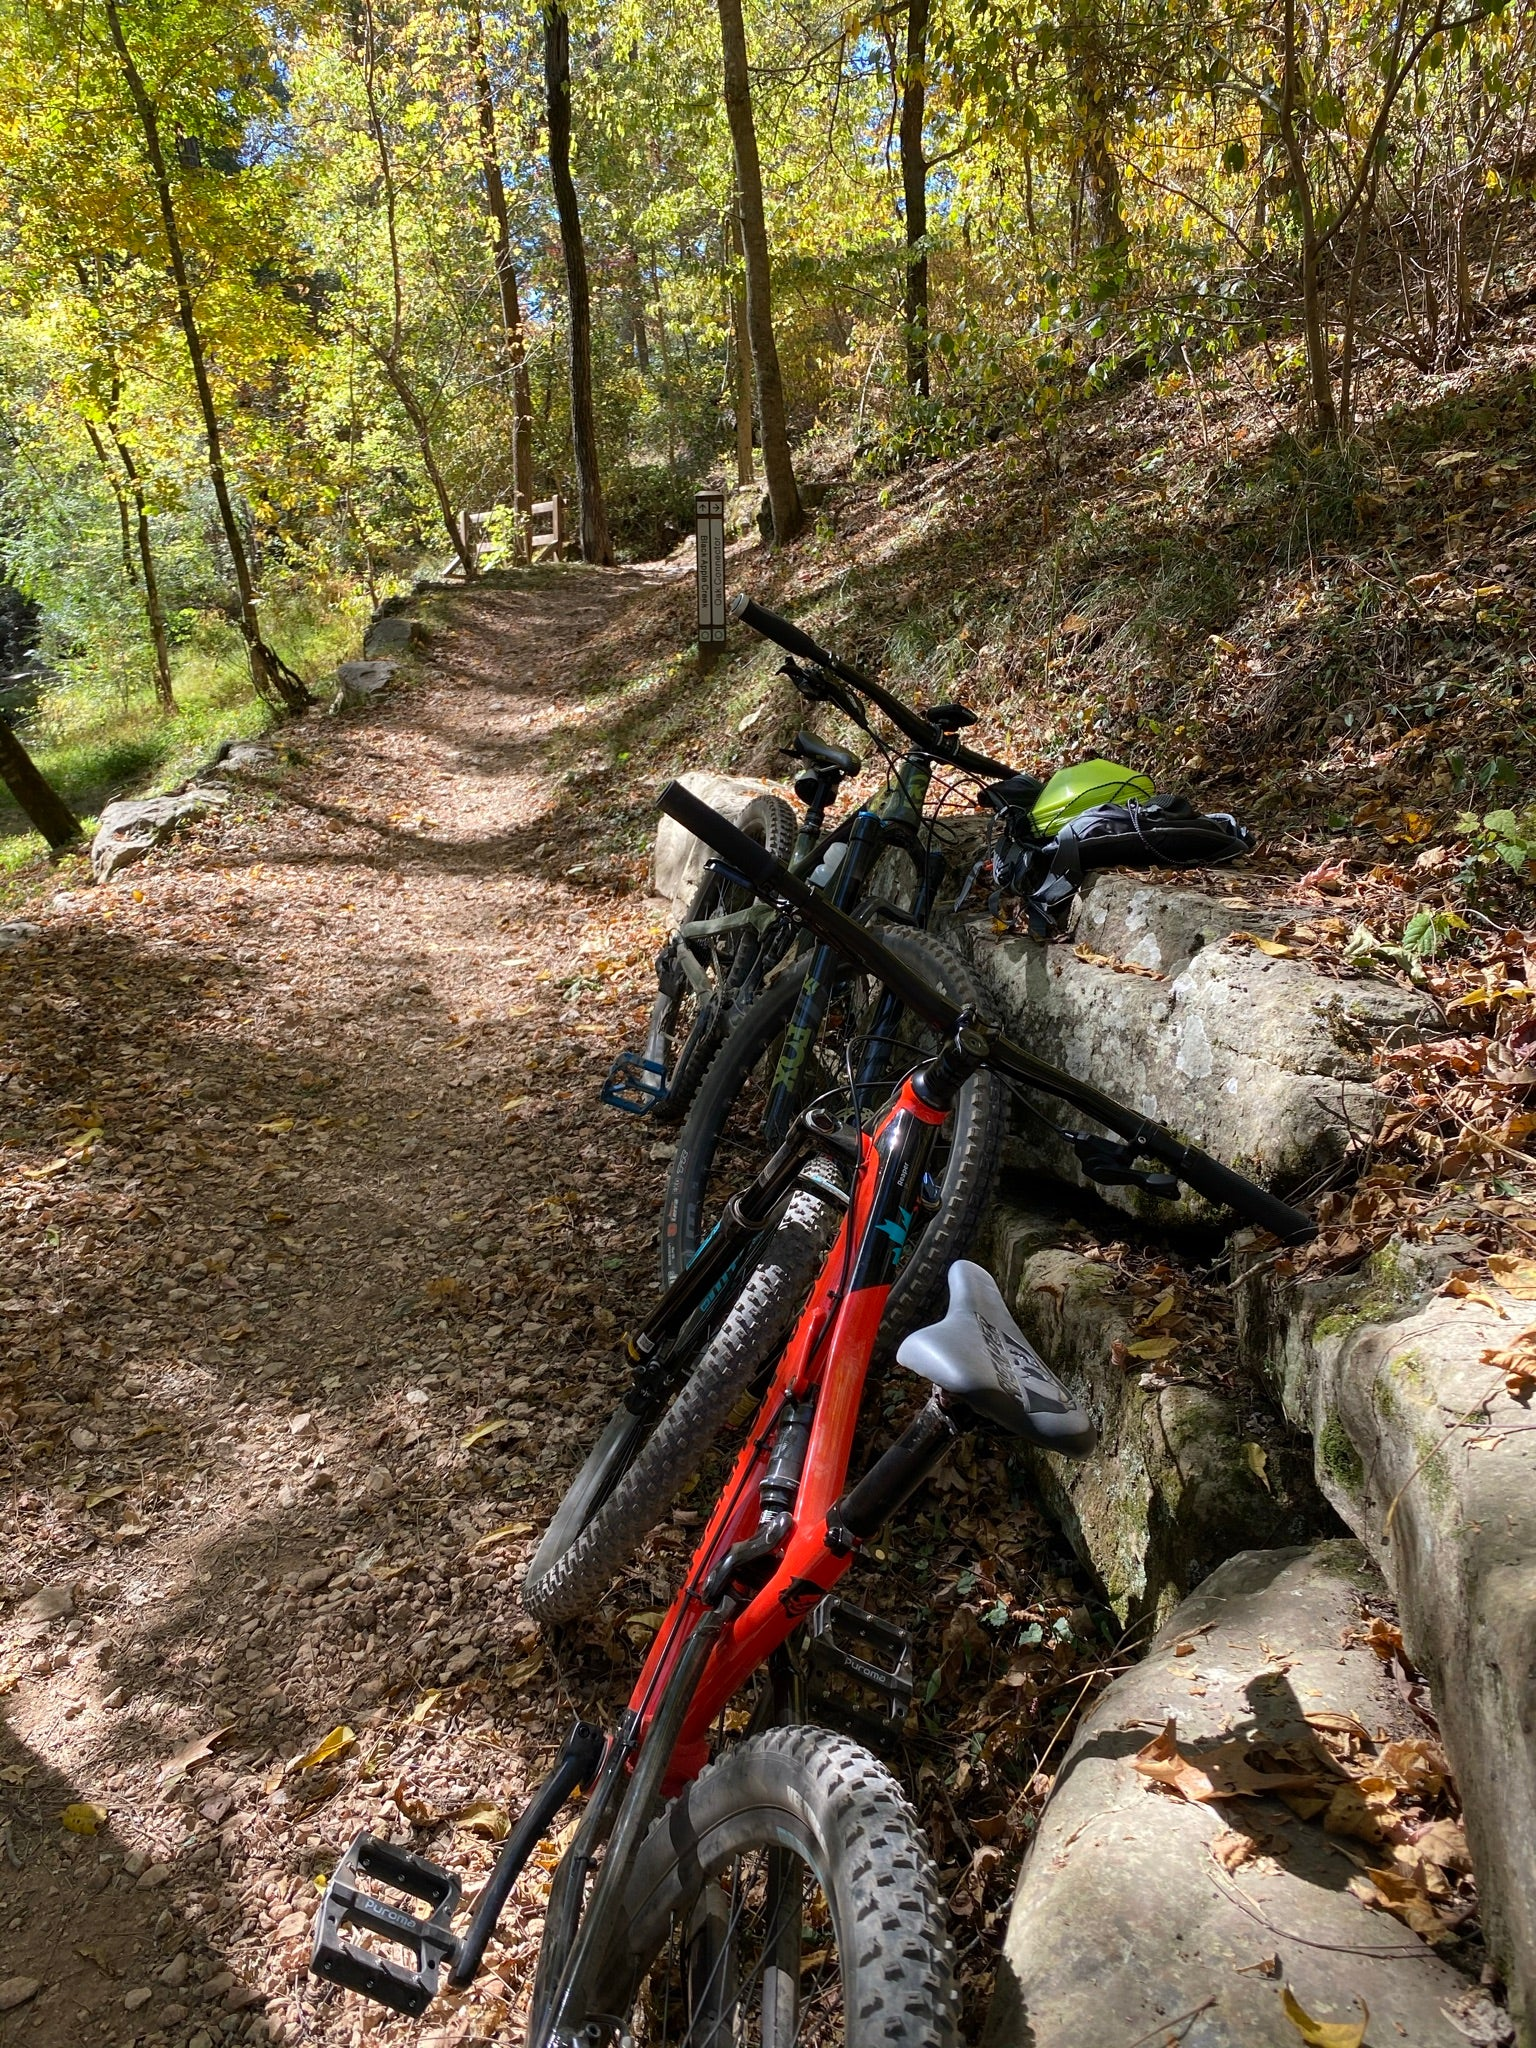 Lunch spot at Park Springs Park Mountain Bike Trails, Bentonville